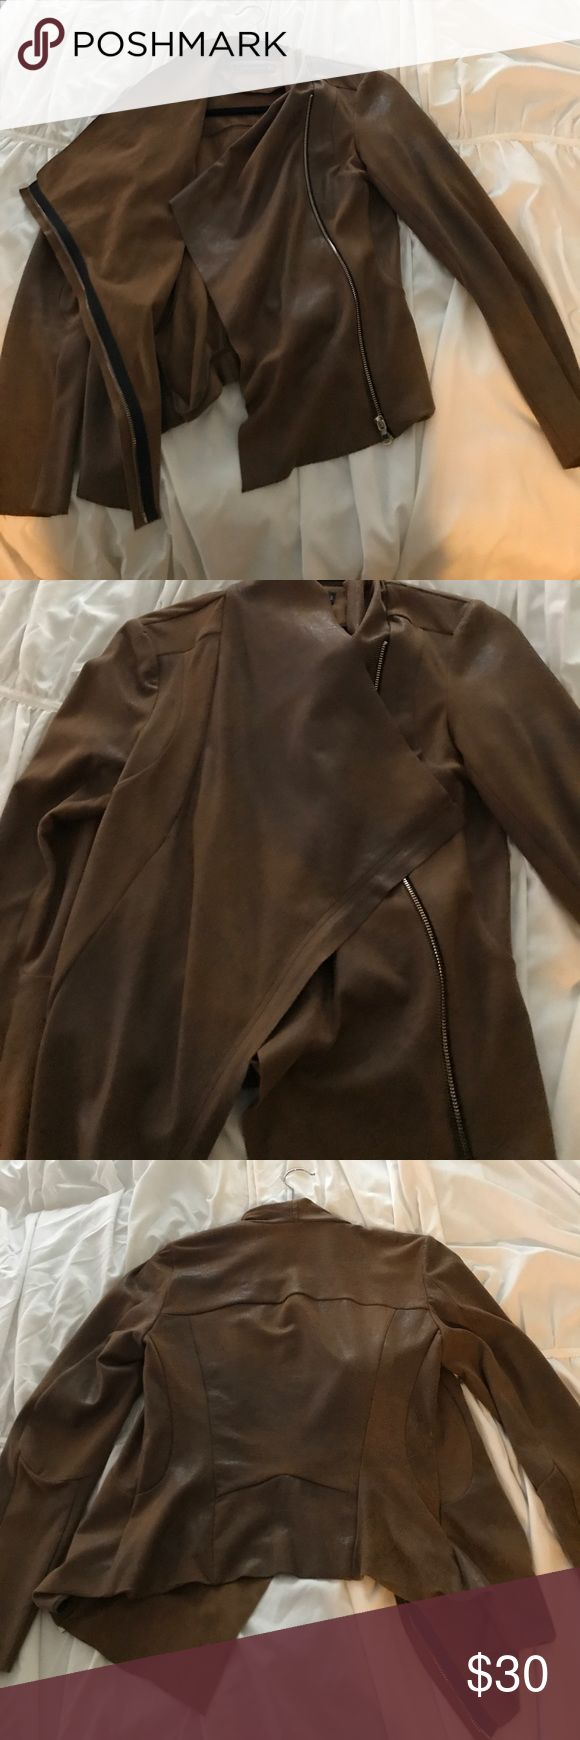 Faux suede Zara jacket Brown faux suede jacket from Zara. Great condition. Really cute with a pair of bf jeans! Zara Jackets & Coats Blazers